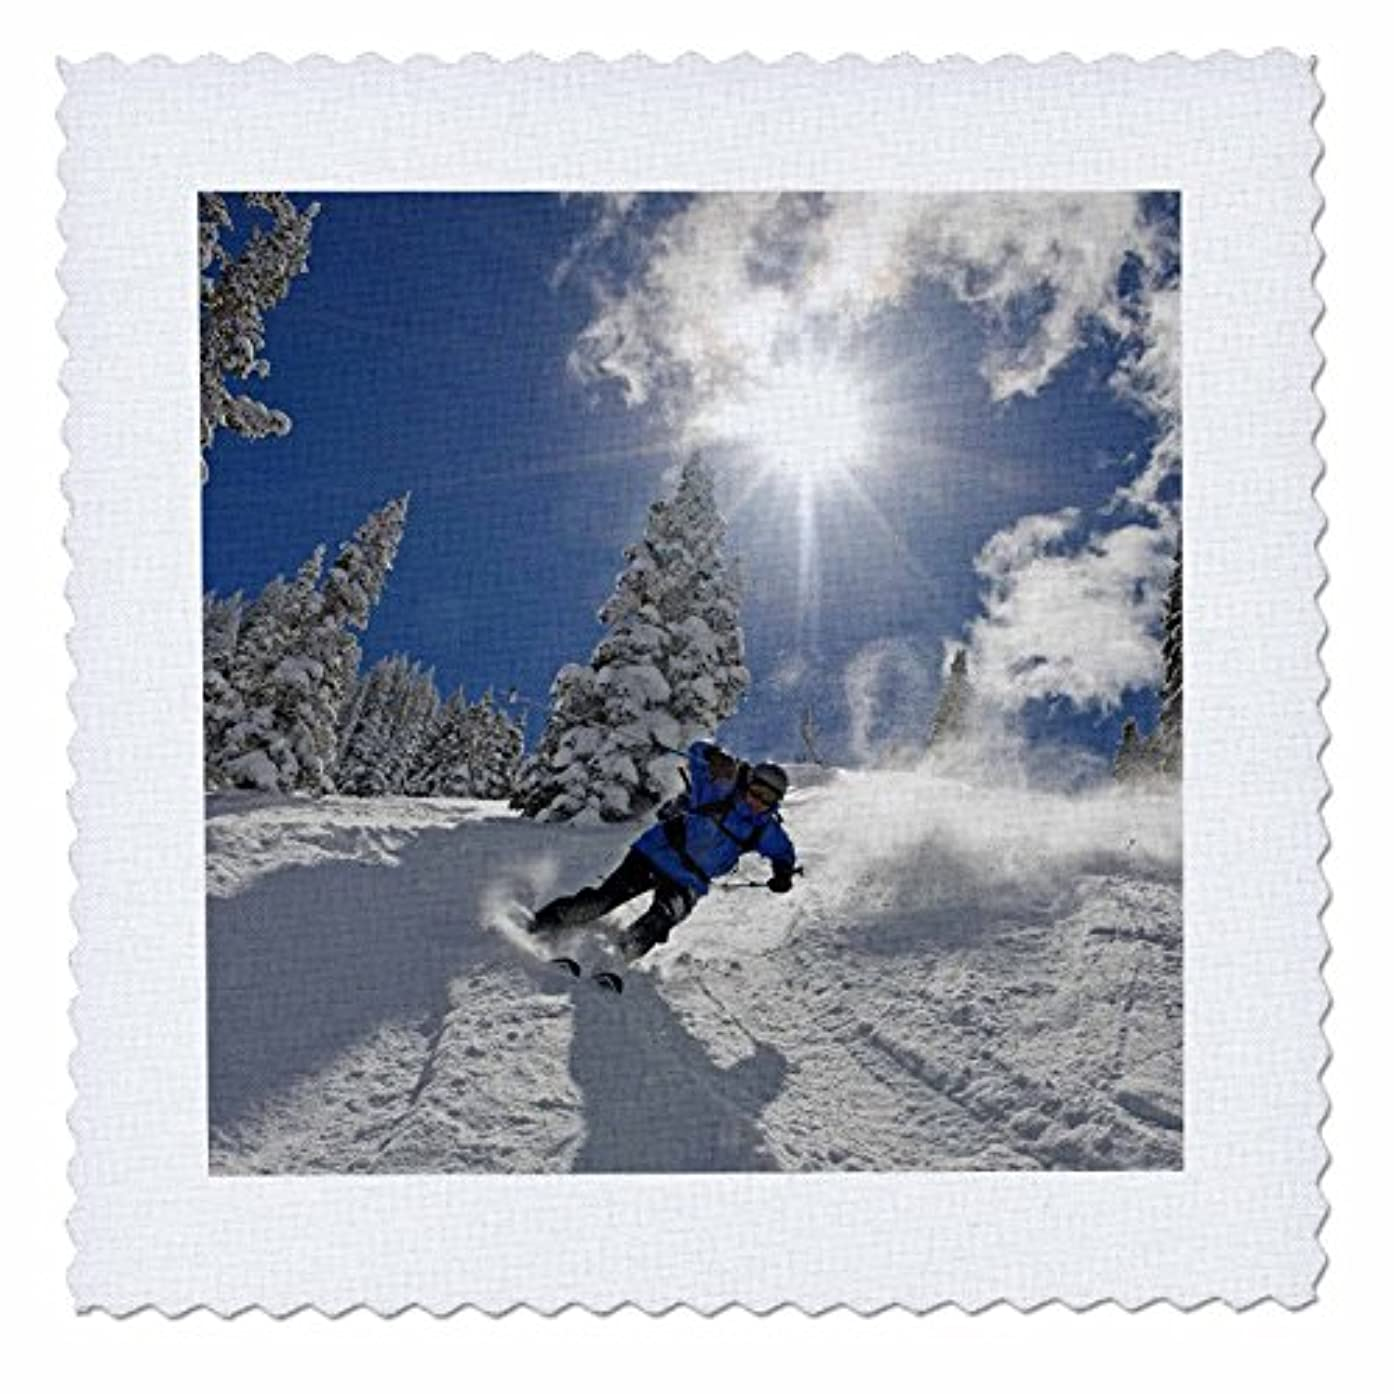 3dRose qs_94773_2 Wasatch Backcountry Skiing, Wasatch Mountains, Utah-US45 HGA0245-Howie Garber-Quilt Square, 6 by 6-Inch